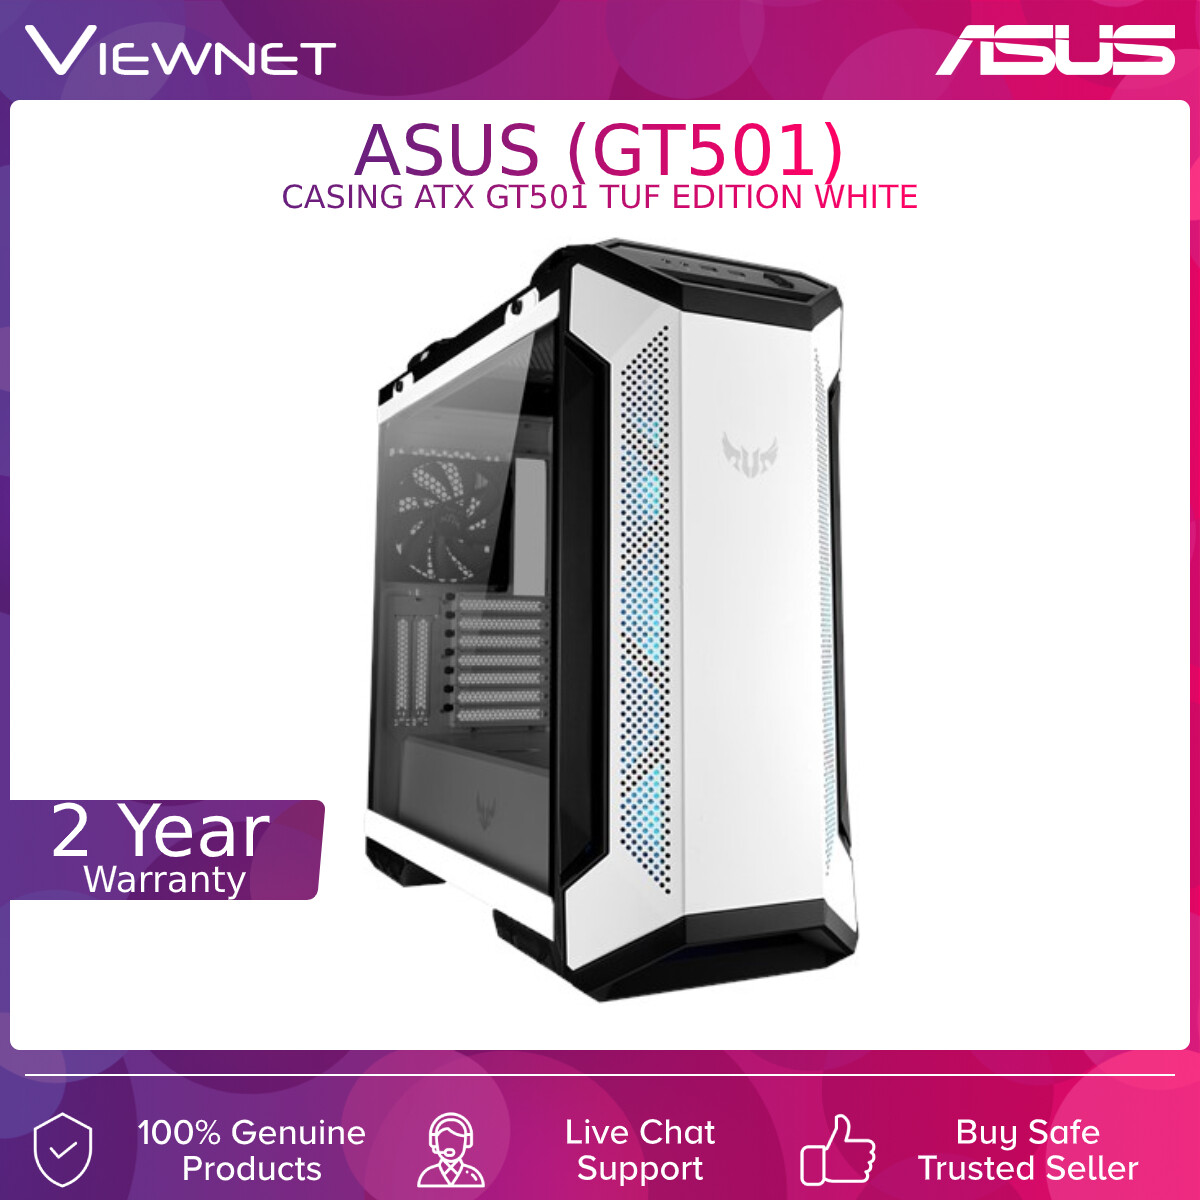 ASUS CASING ATX GT501 TUF EDITION WHITE